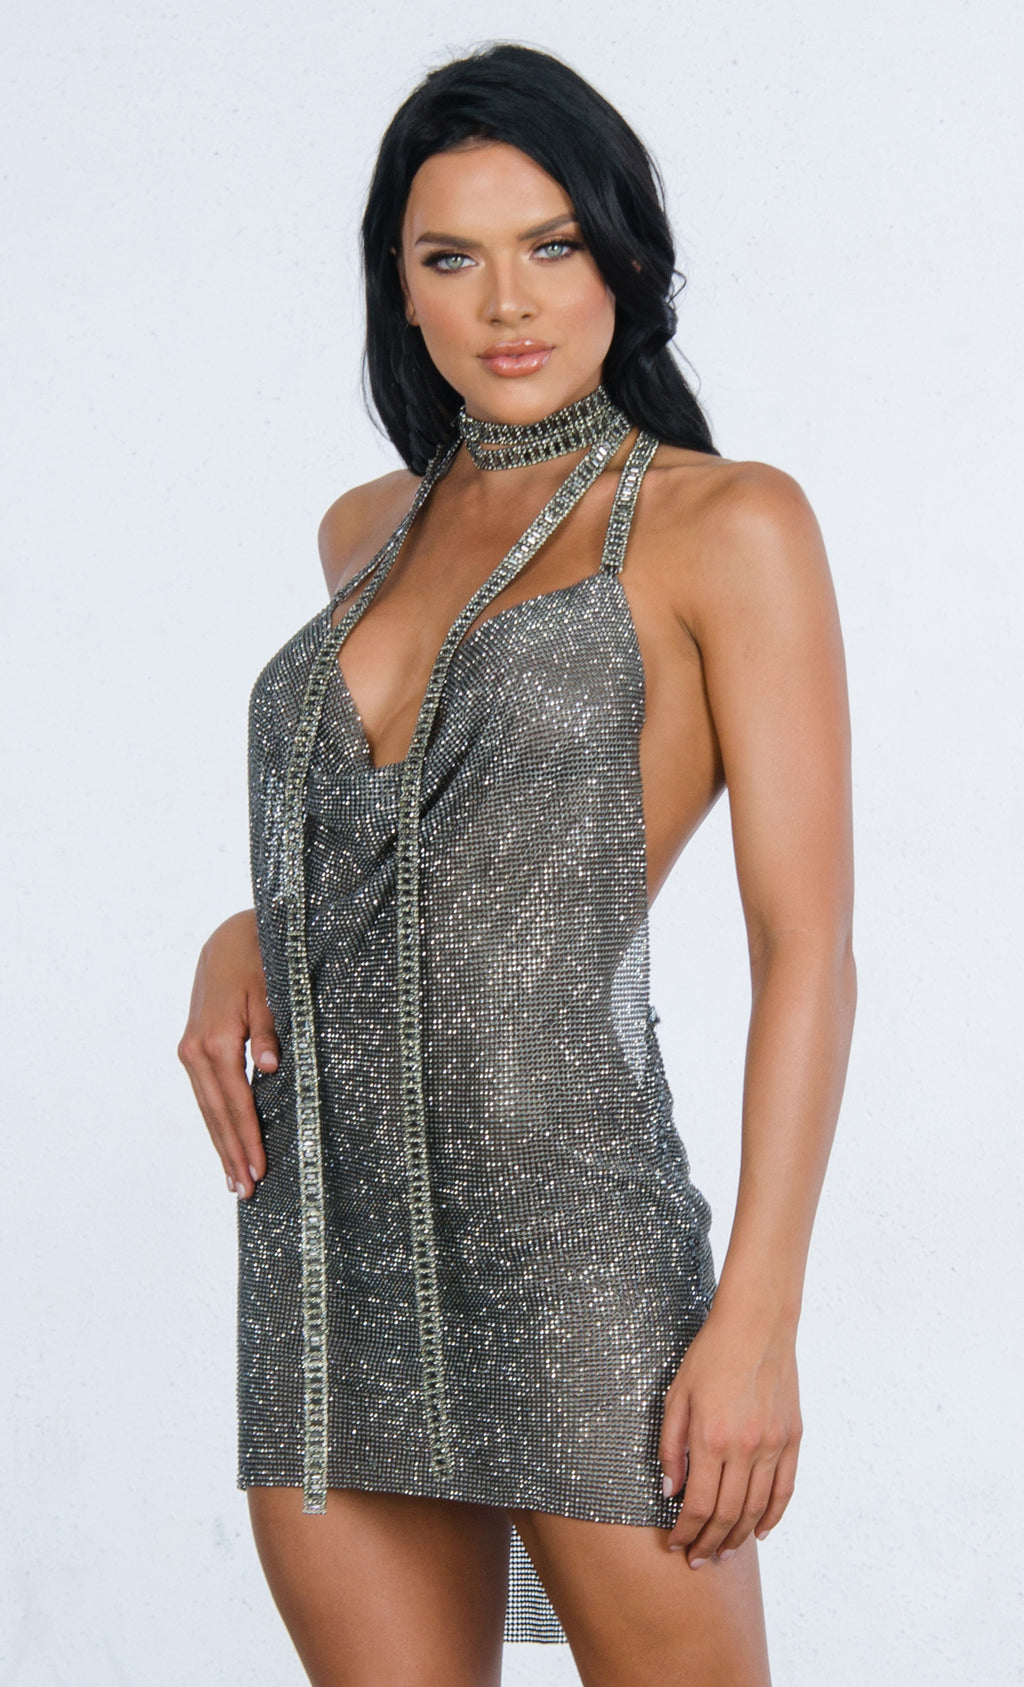 Indie XO Red Carpet Ready Black Smokey Metallic Swarovski Crystal Rhinestone Mesh Chain Baguette Cut Spaghetti Straps Backless V Neck Mini Dress